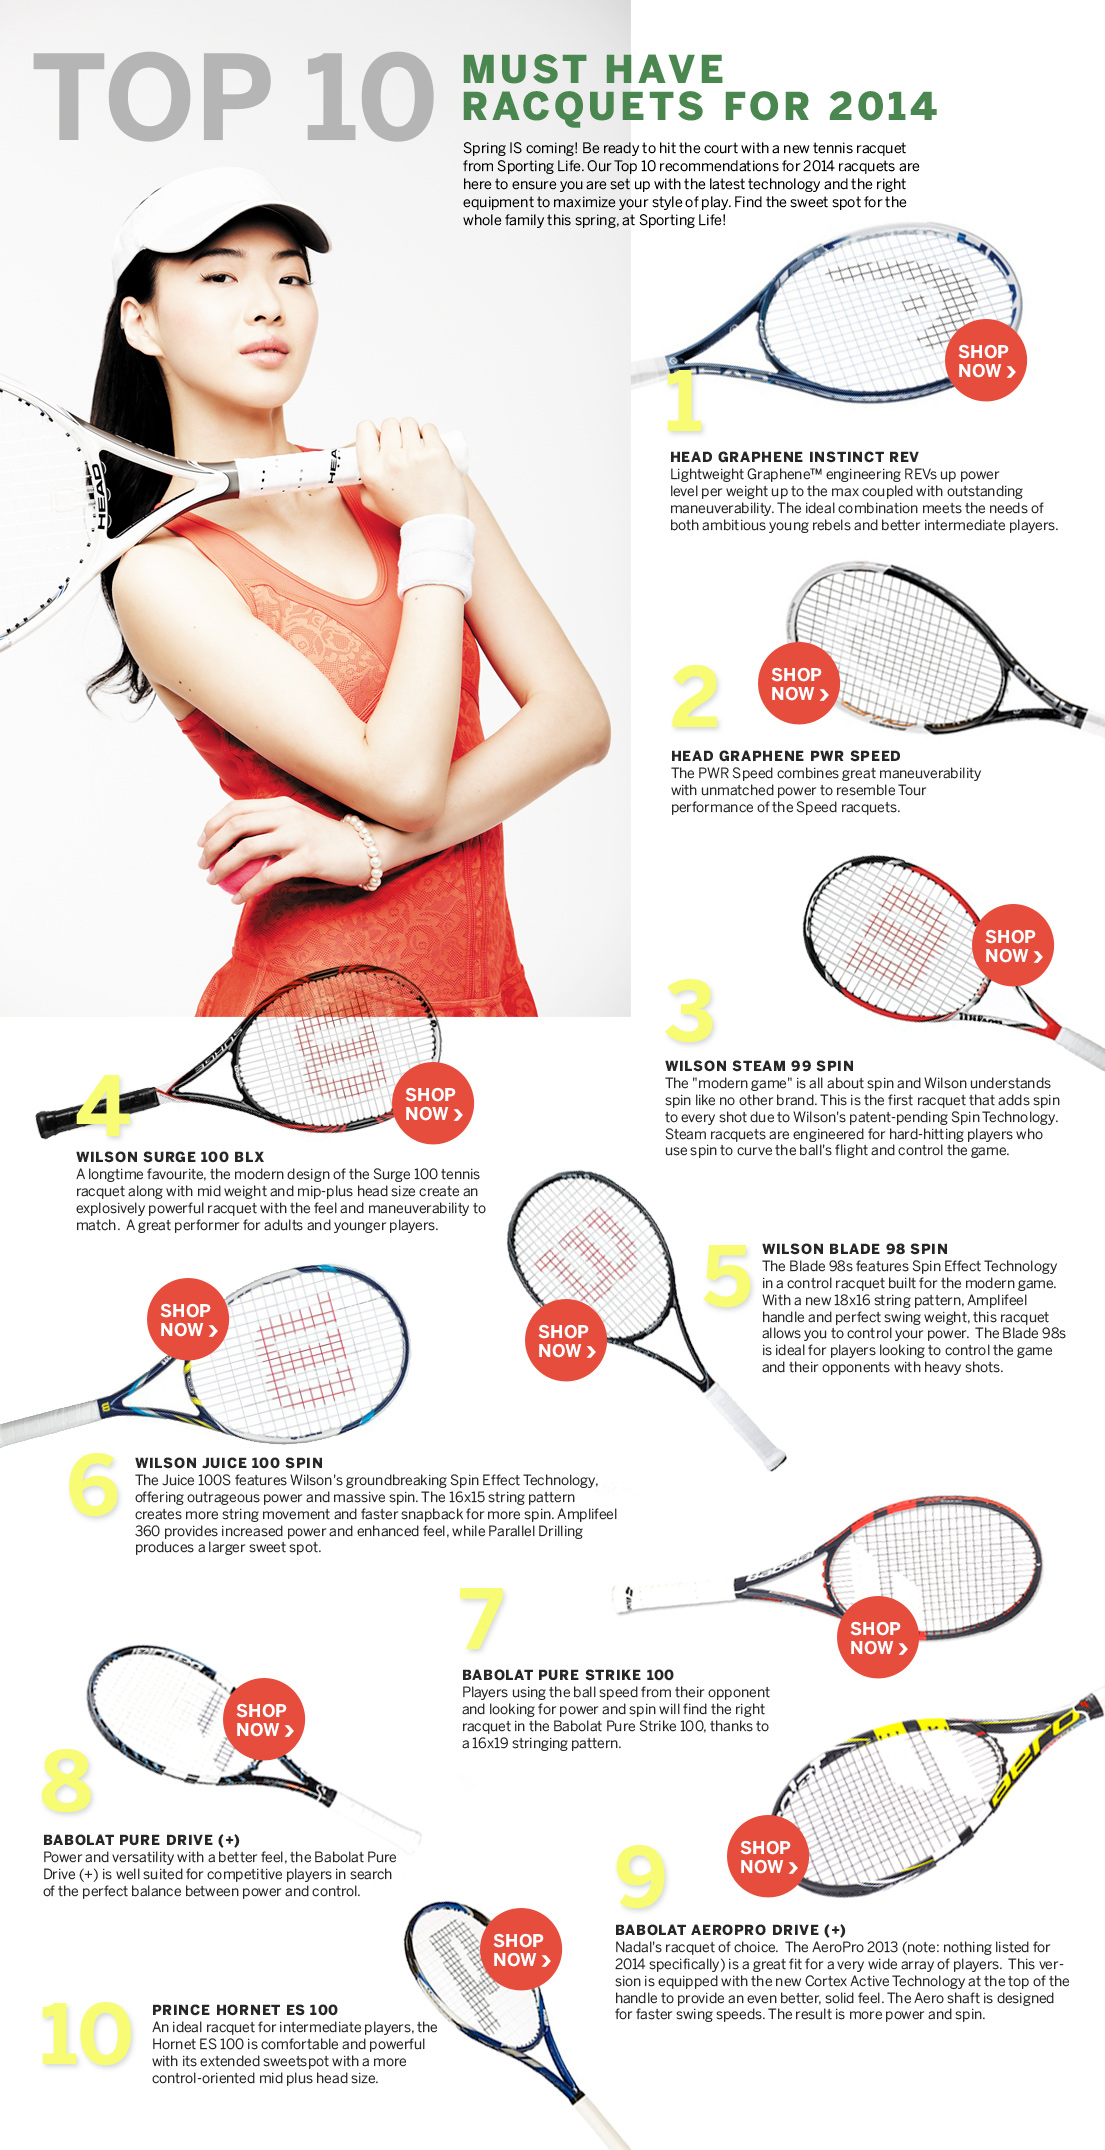 Top 10 Must Have Racquets for 2014